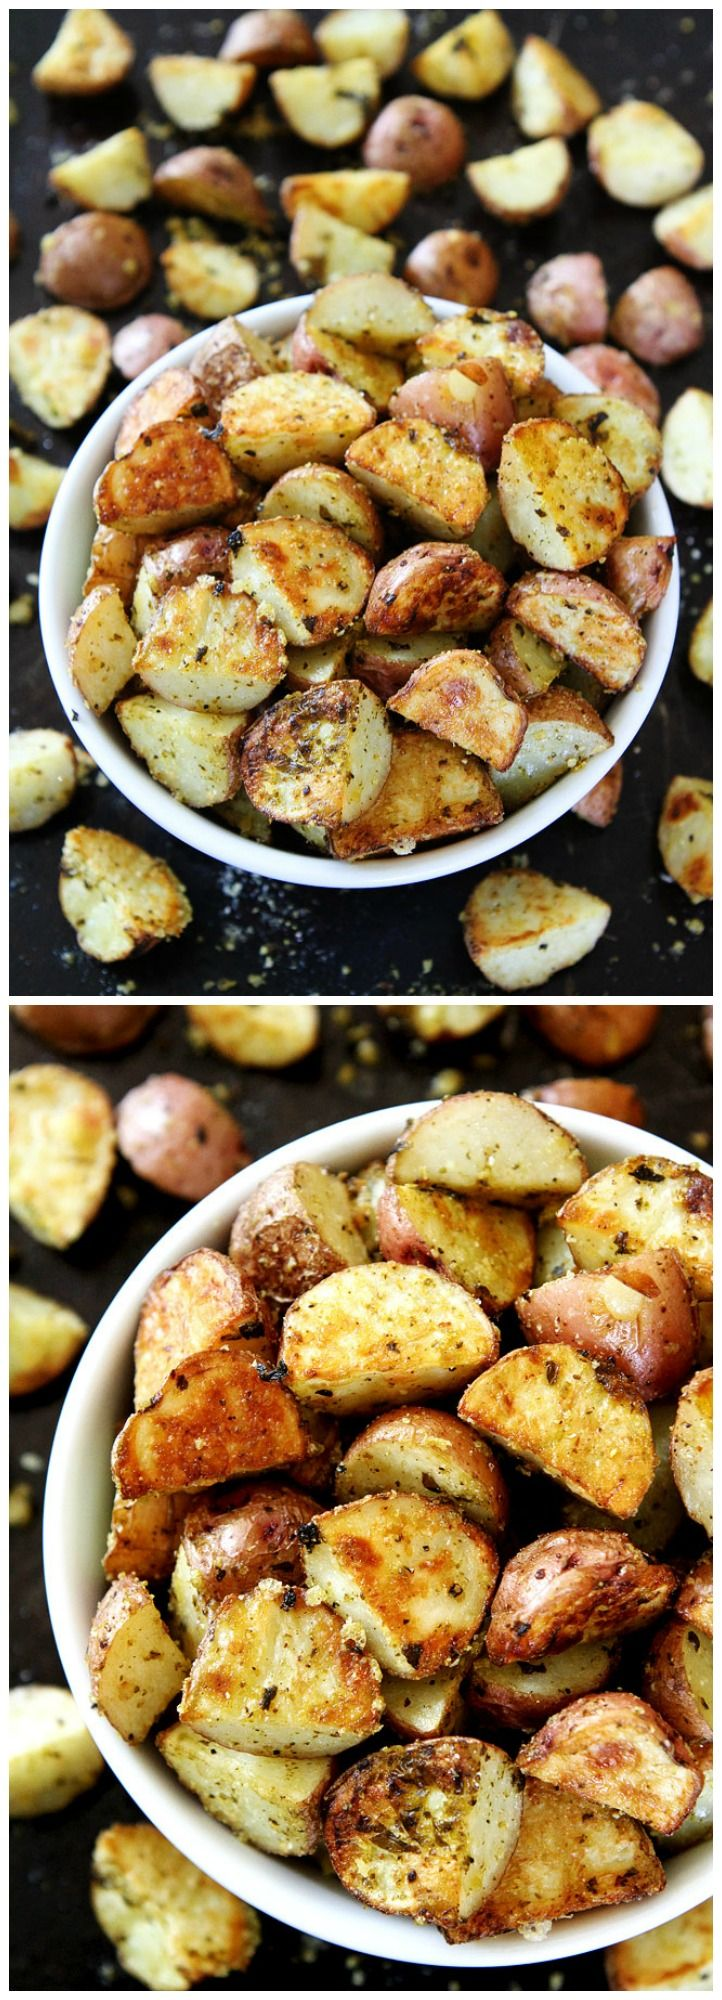 3-Ingredient Roasted Pesto Parmesan Potatoes Recipe on twopeasandtheirpod.com You only need THREE ingredients to make these delicious potatoes. They make a great side dish to any meal.: